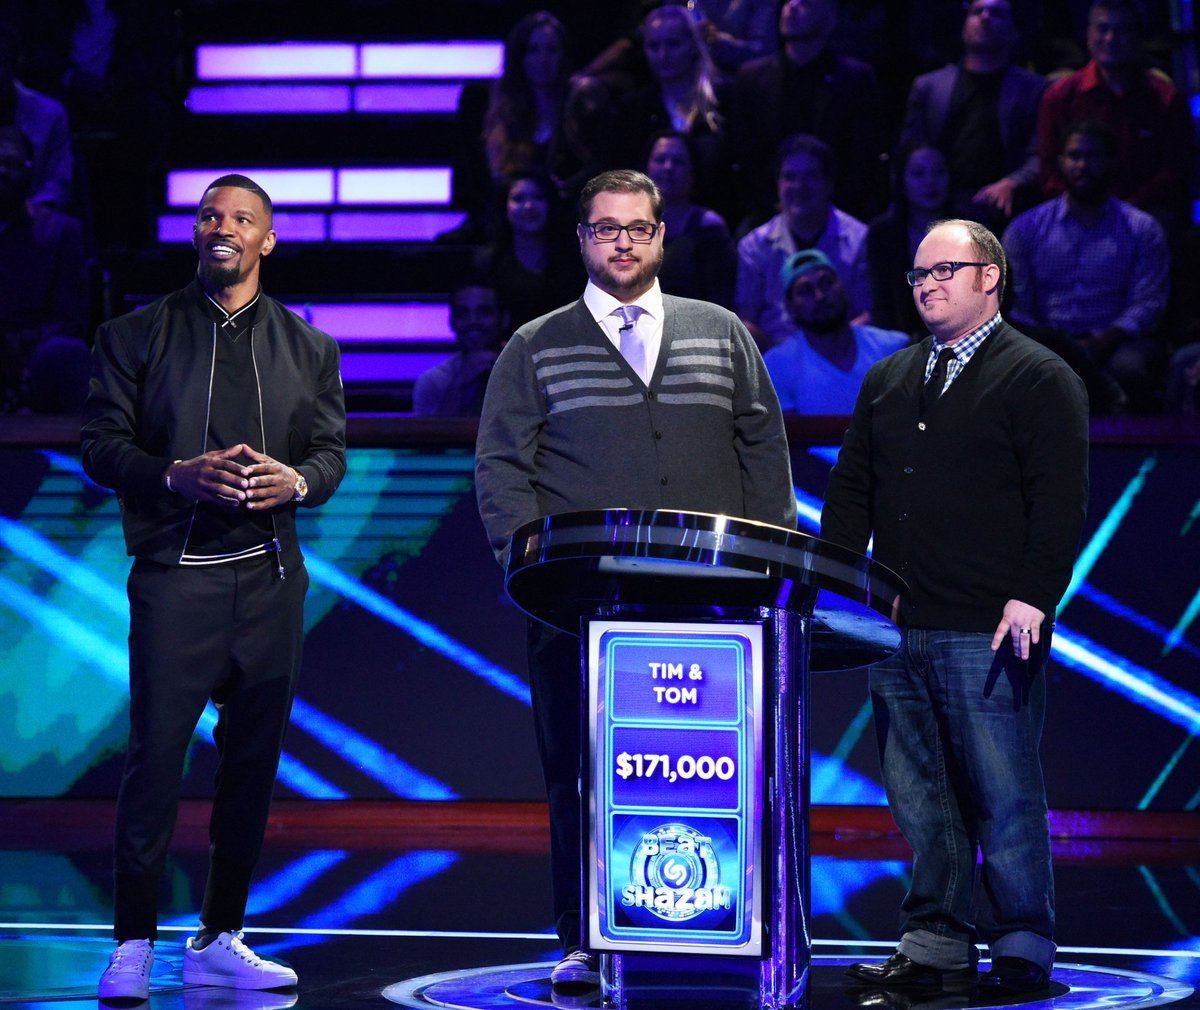 .@iamjamiefoxx returns to television as host of the new game show 'Bea...